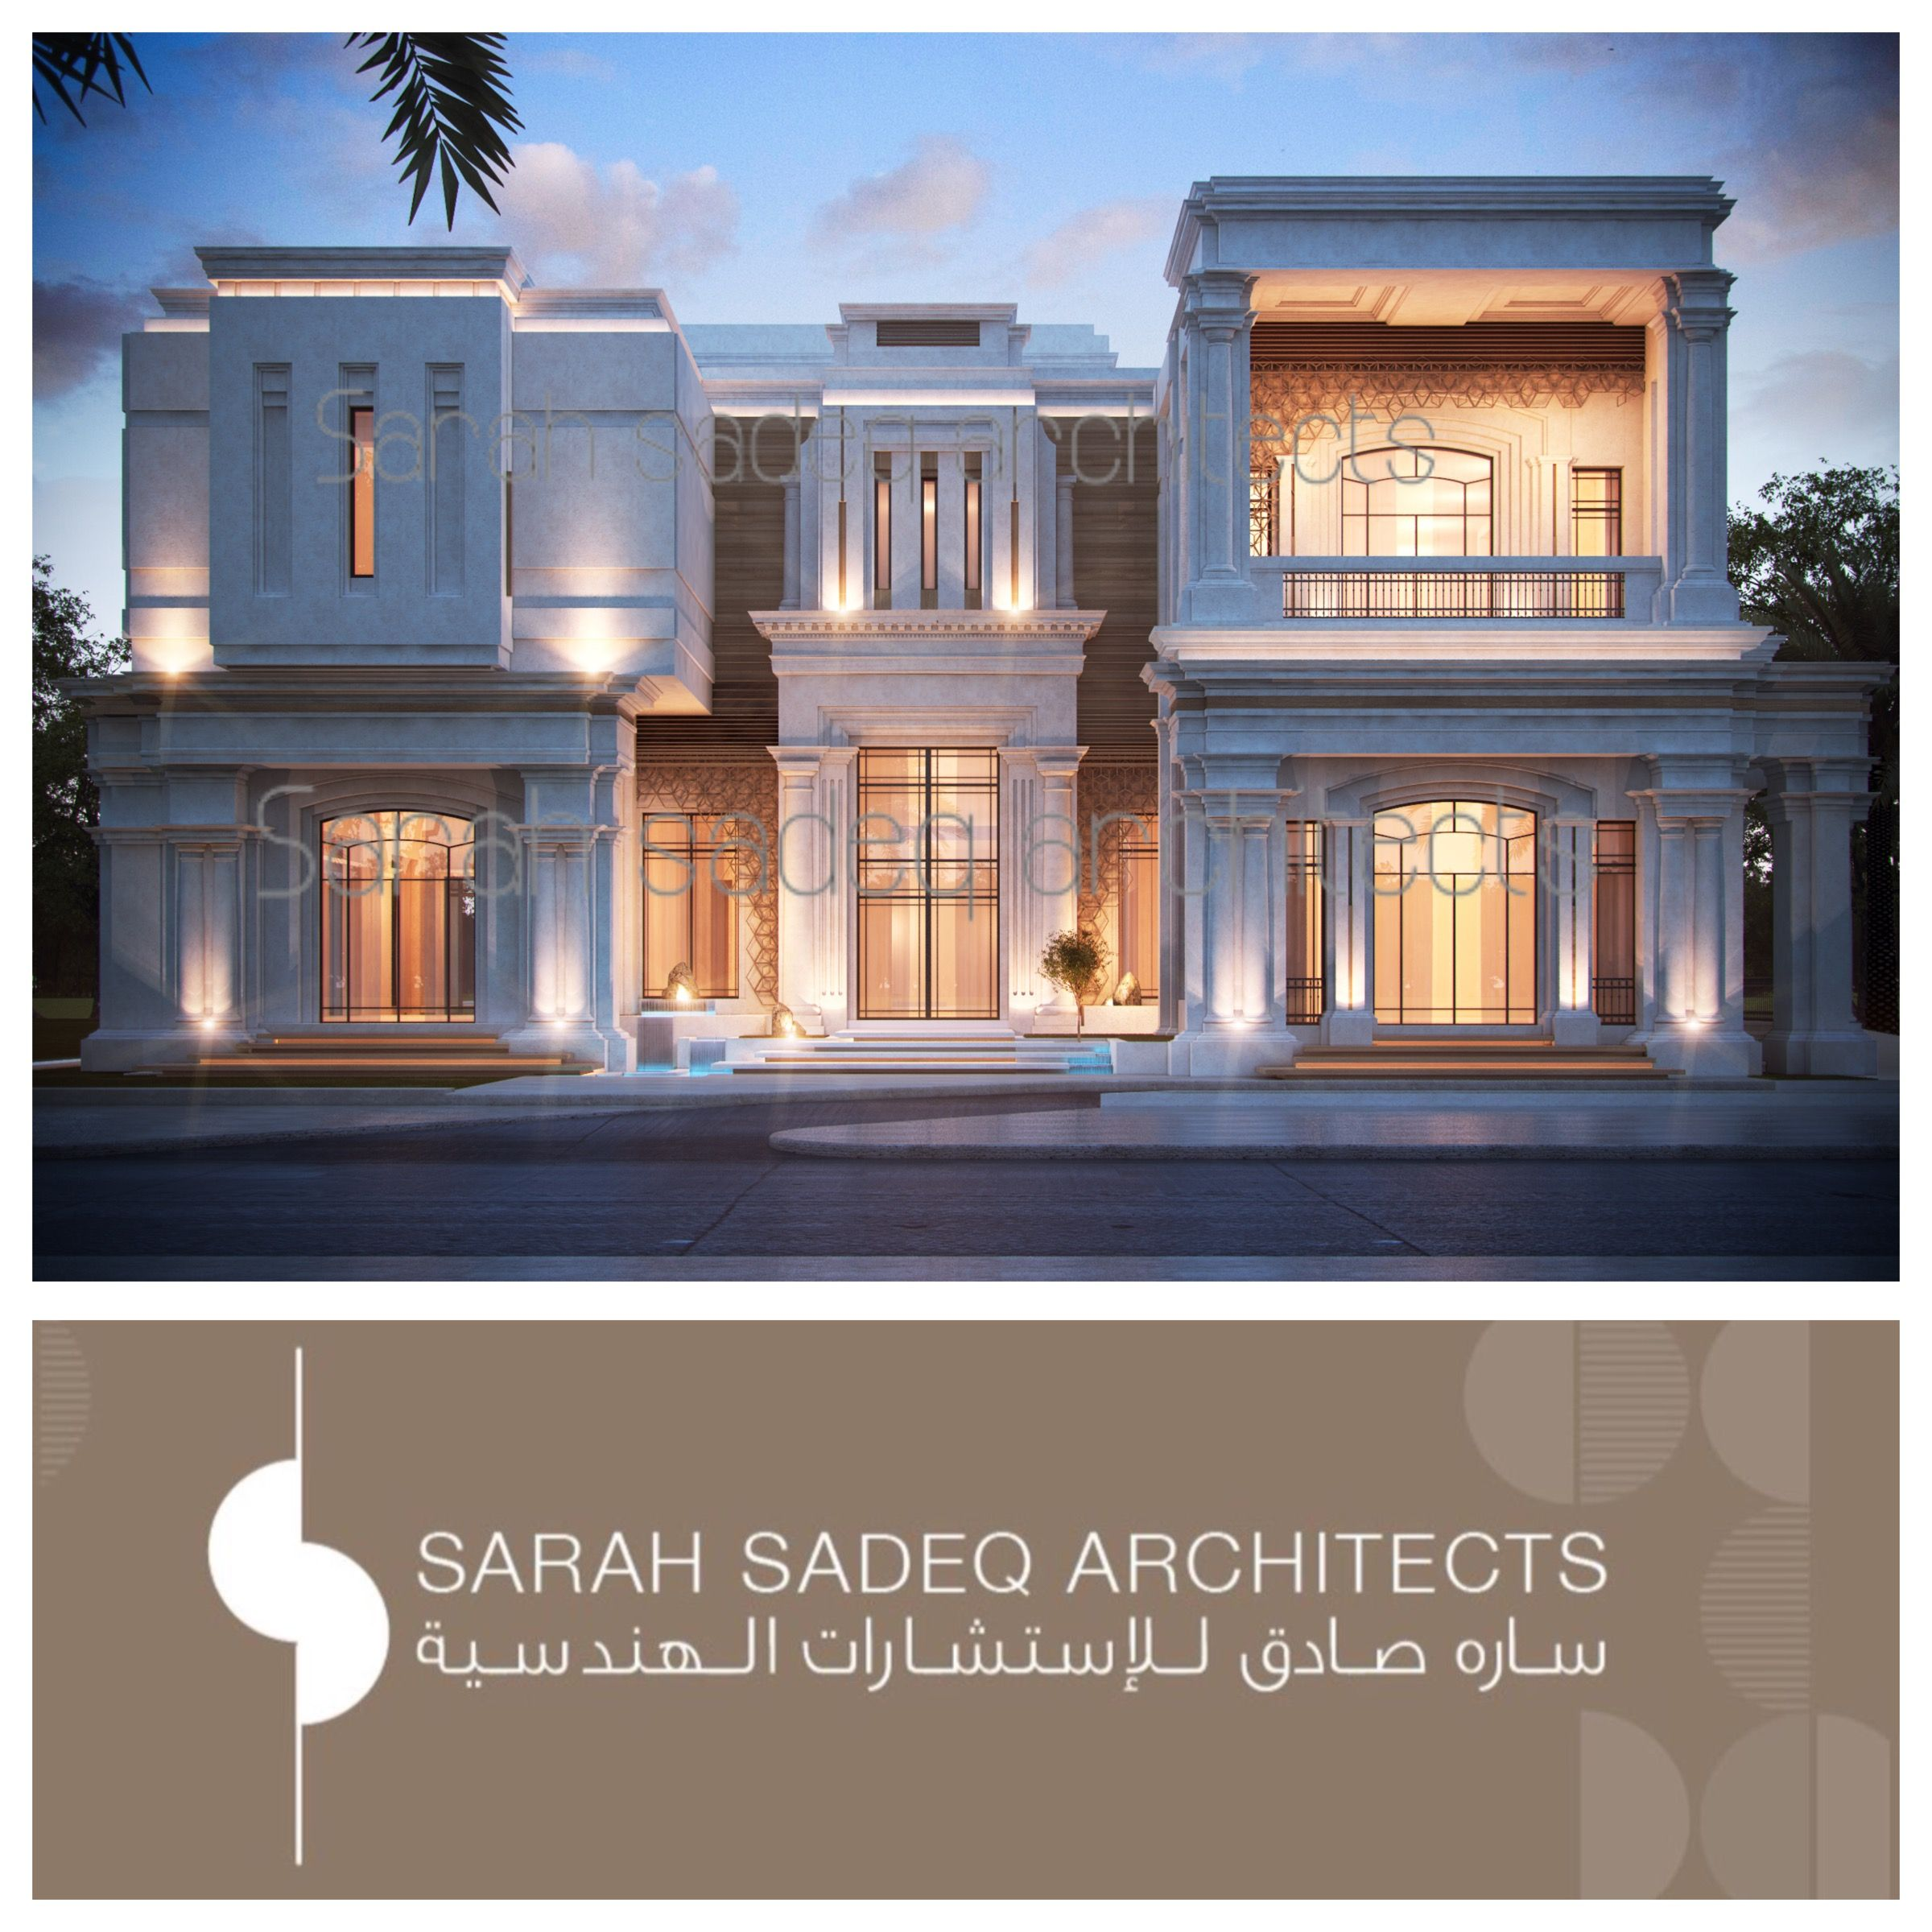 Private Villa Sarah Sadeq Architects Kuwait: Uae By Sarah Sadeq Architects Dubai